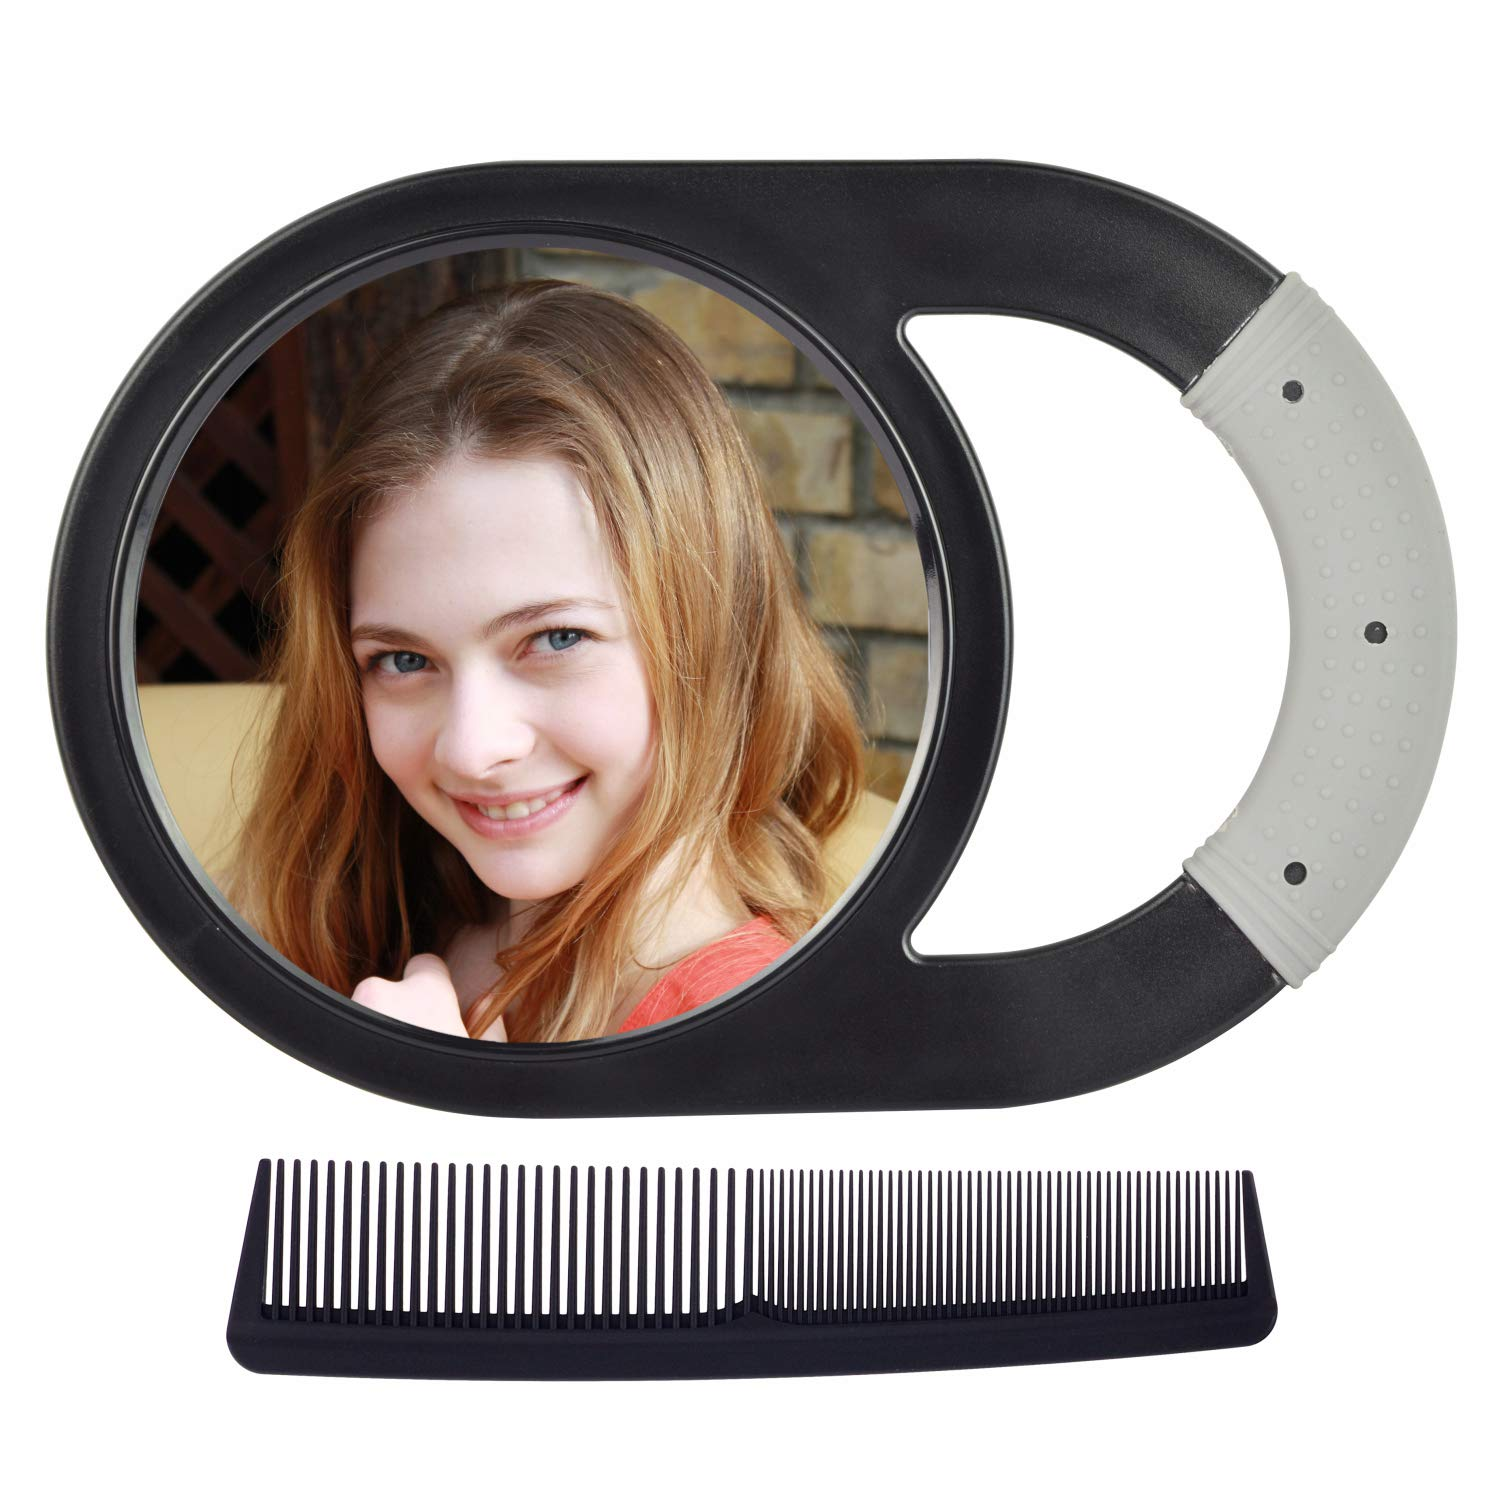 Hand Mirror, Unbreakable Handheld Mirror with Silicone Handle for Personal Beauty, Hair Salon or Barber Shops, Come with Free Gift Anti-static Carbon Combs